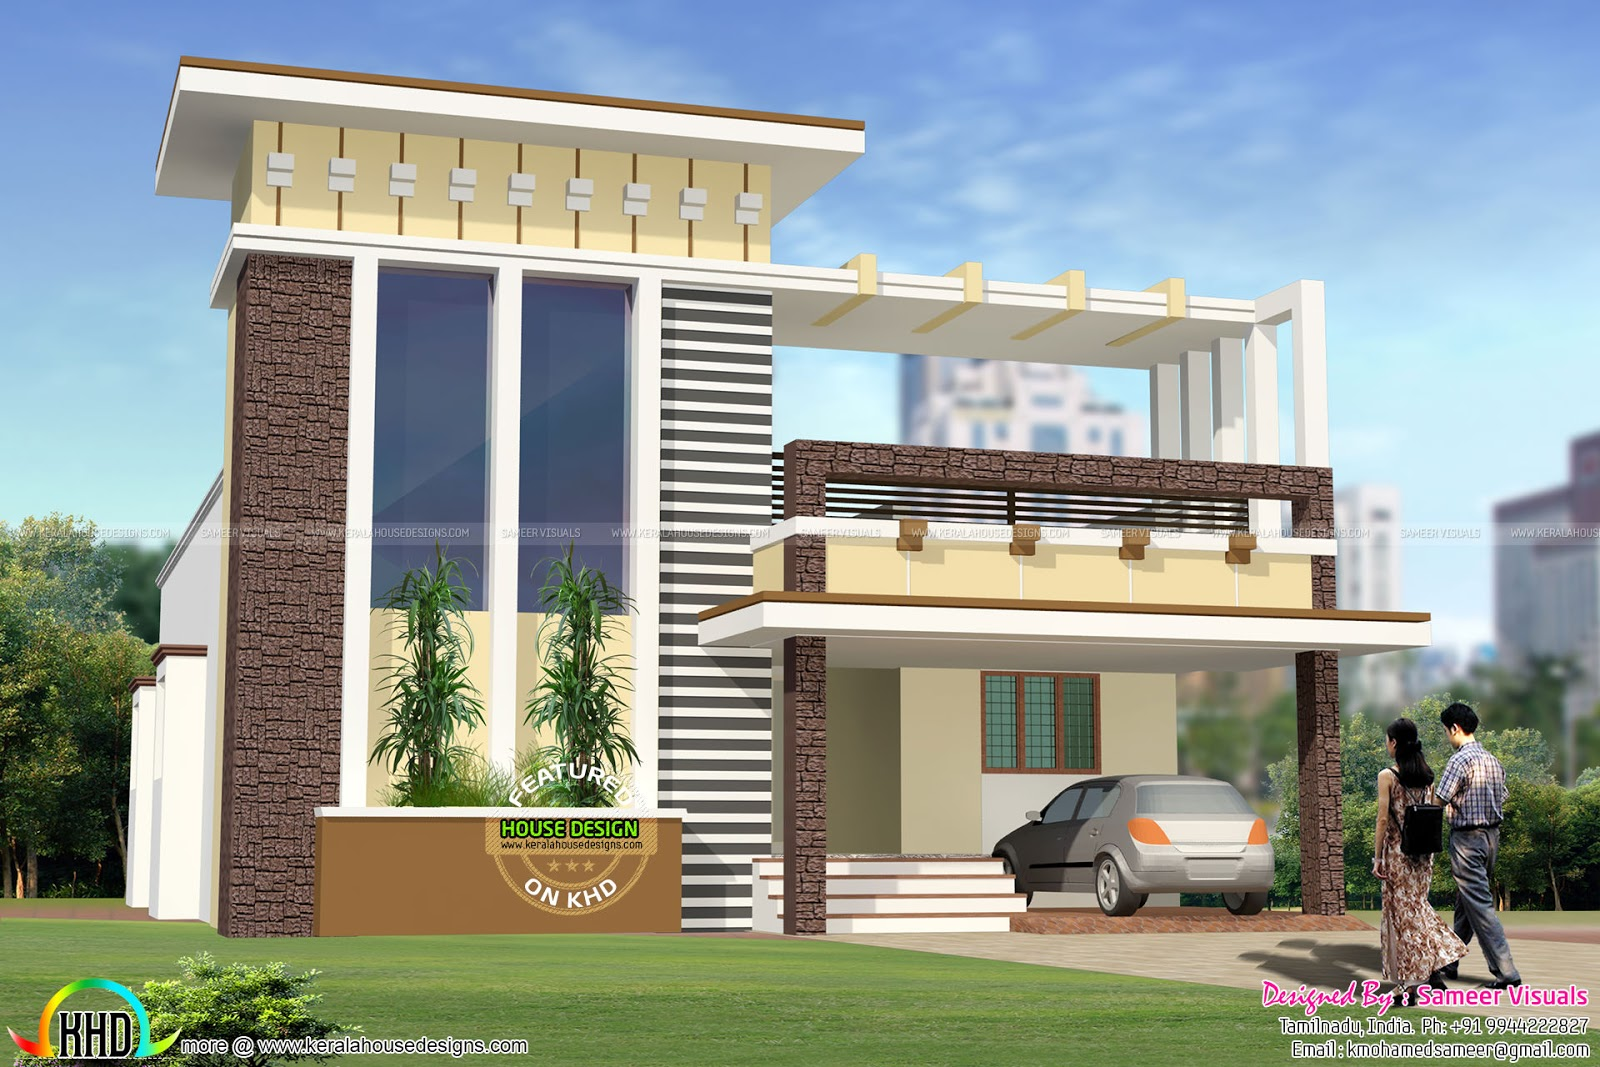 Tamilnadu house designs joy studio design gallery best for Tamilnadu house designs photos